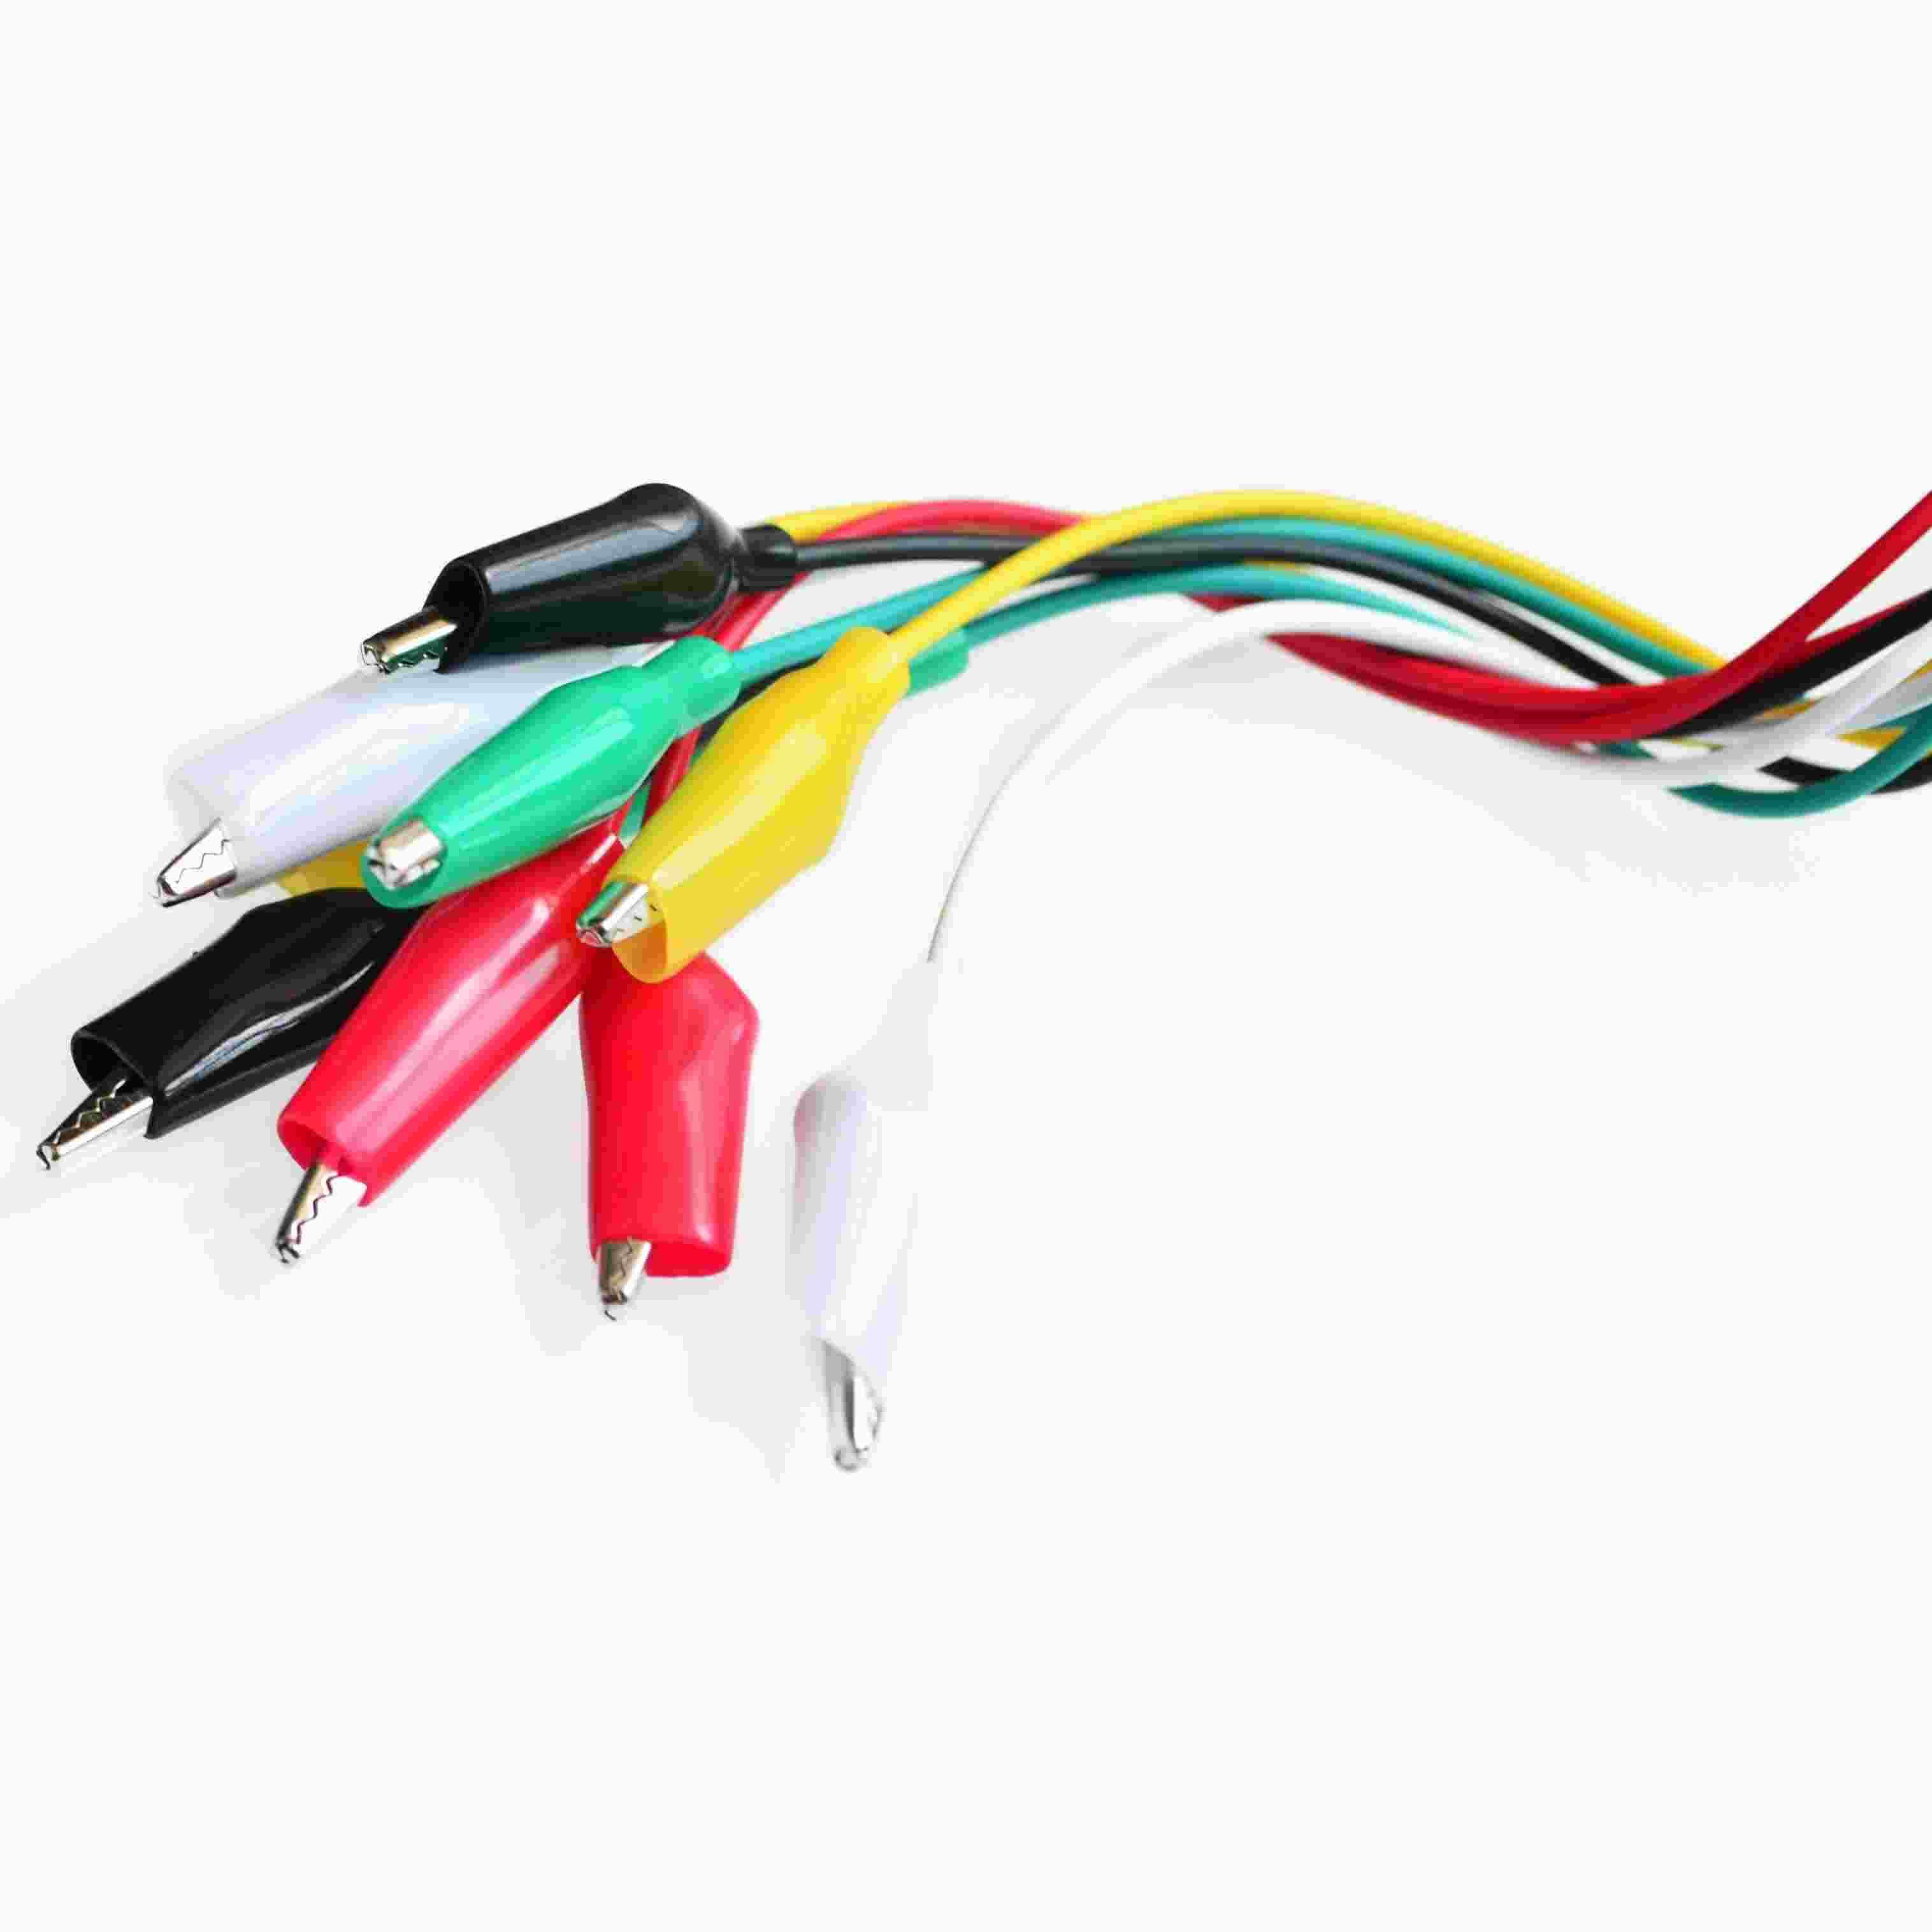 Alligator clips with wire clipart jpg free library 1set 10pcs Alligator-Clips Electrical DIY Test Leads Alligator Double-ended  Crocodile Clips Roach Clip Test Jumper Wire jpg free library